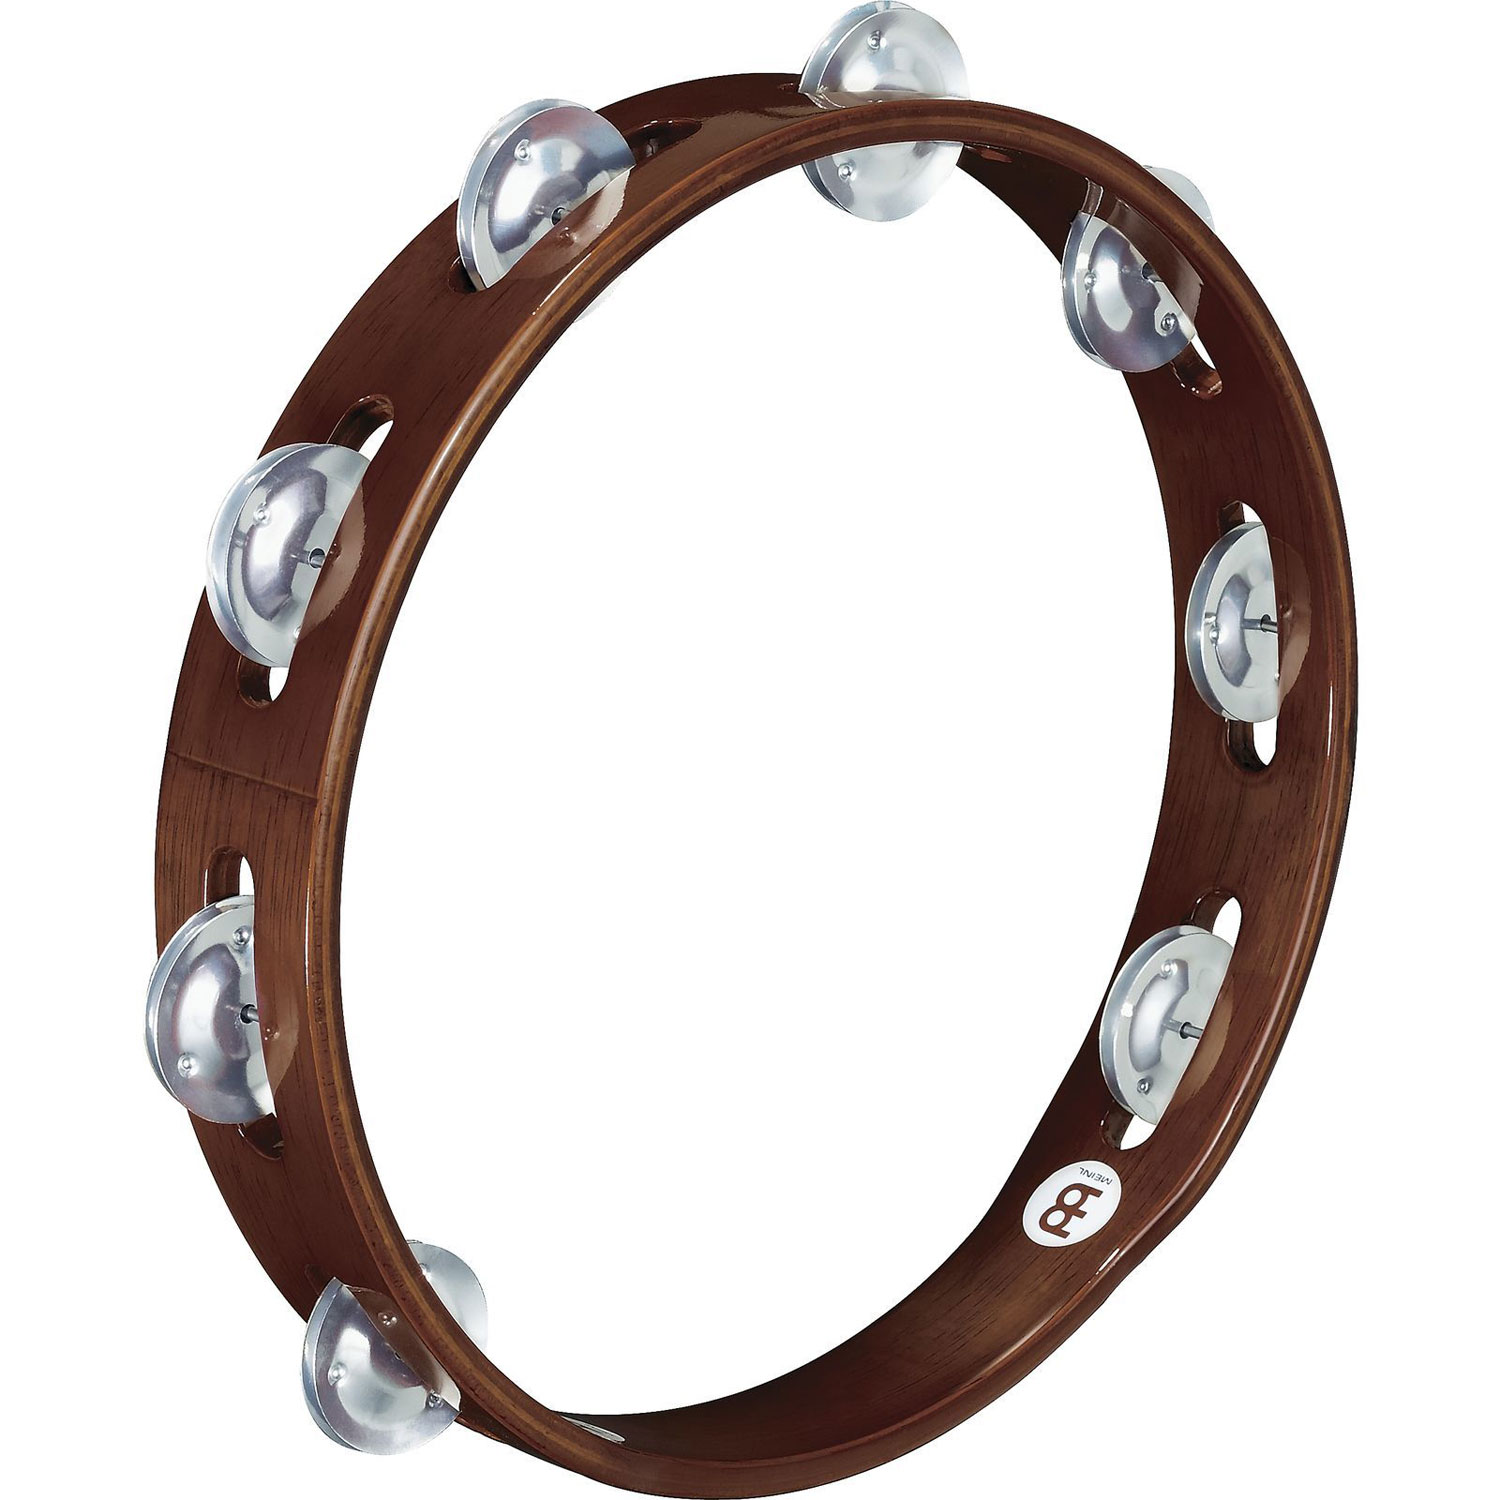 Meinl Single Row Wood Tambourine, Aluminum Jingles